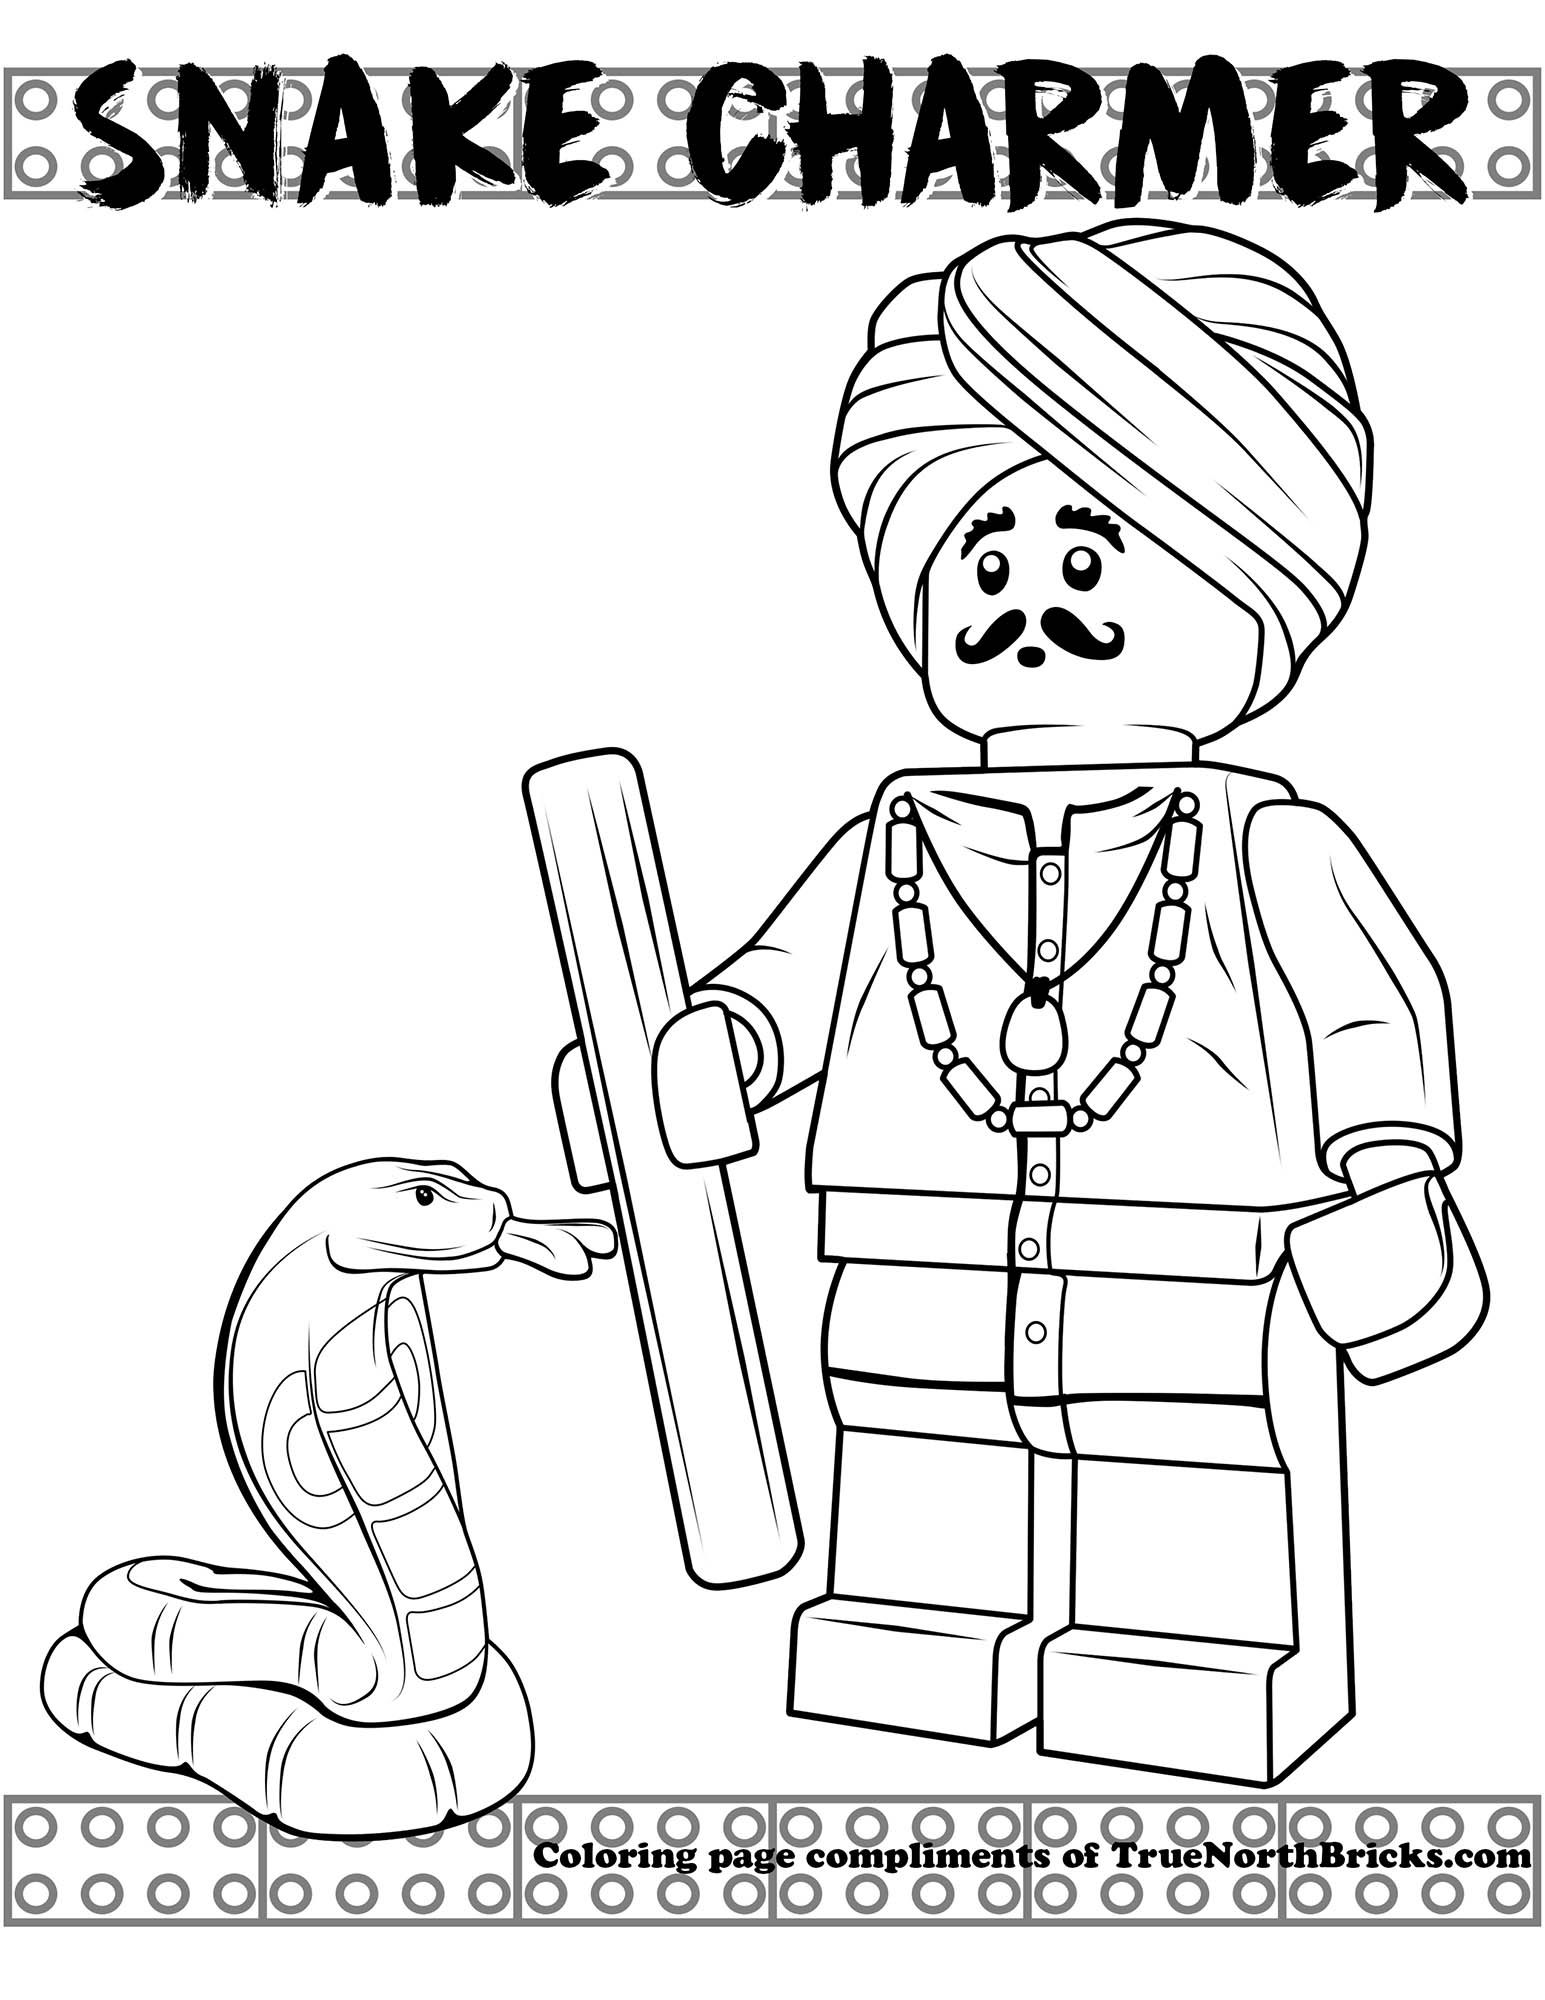 Coloring Page Snake Charmer Coloring Pages Lego Coloring Pages